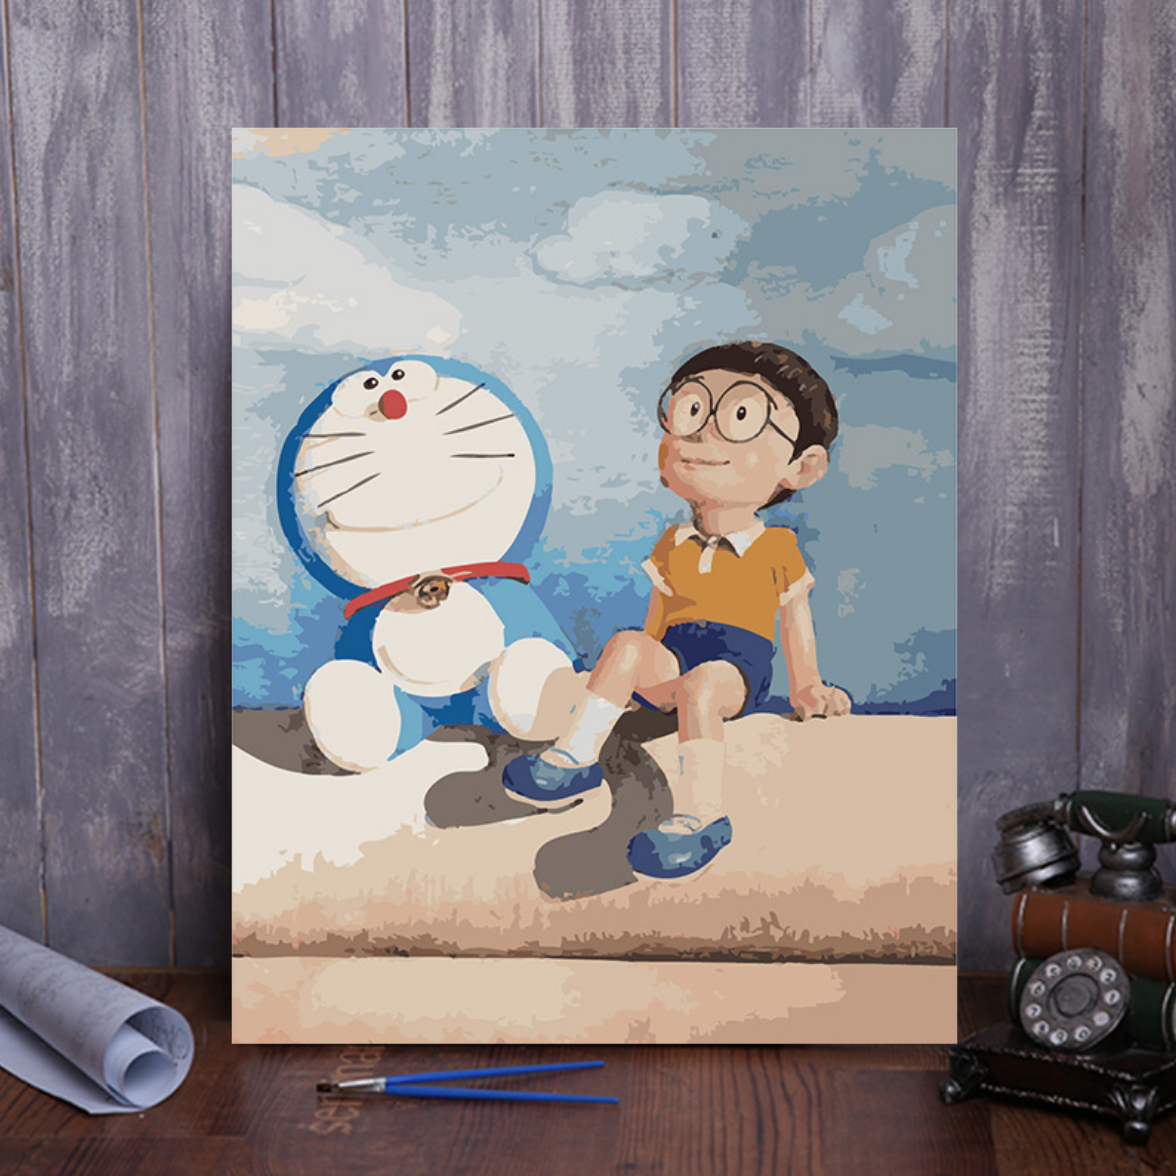 Doraemon at the Beach DIY Painting